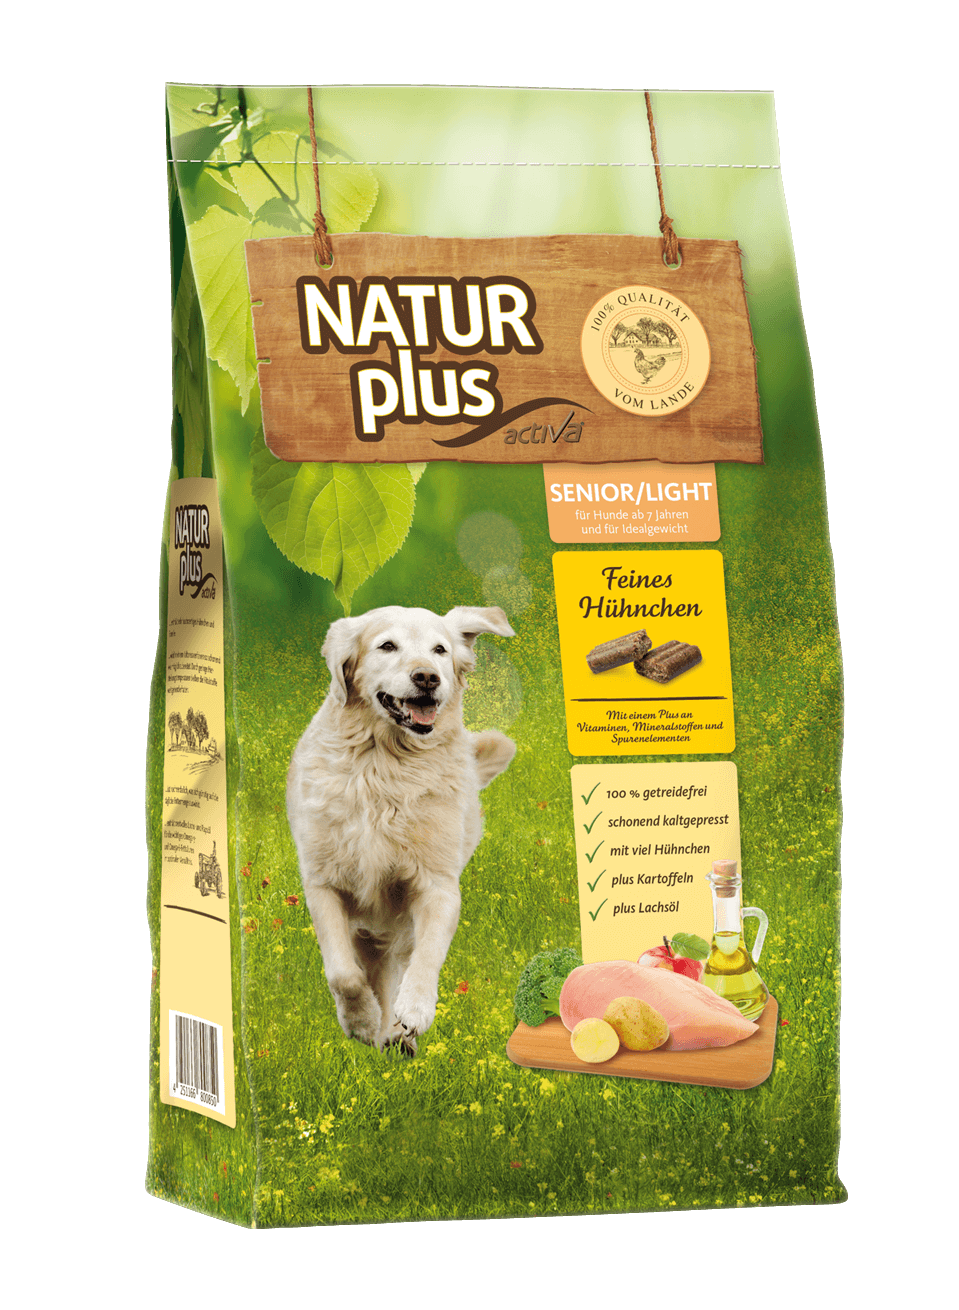 Natur plus Hund Senior Light